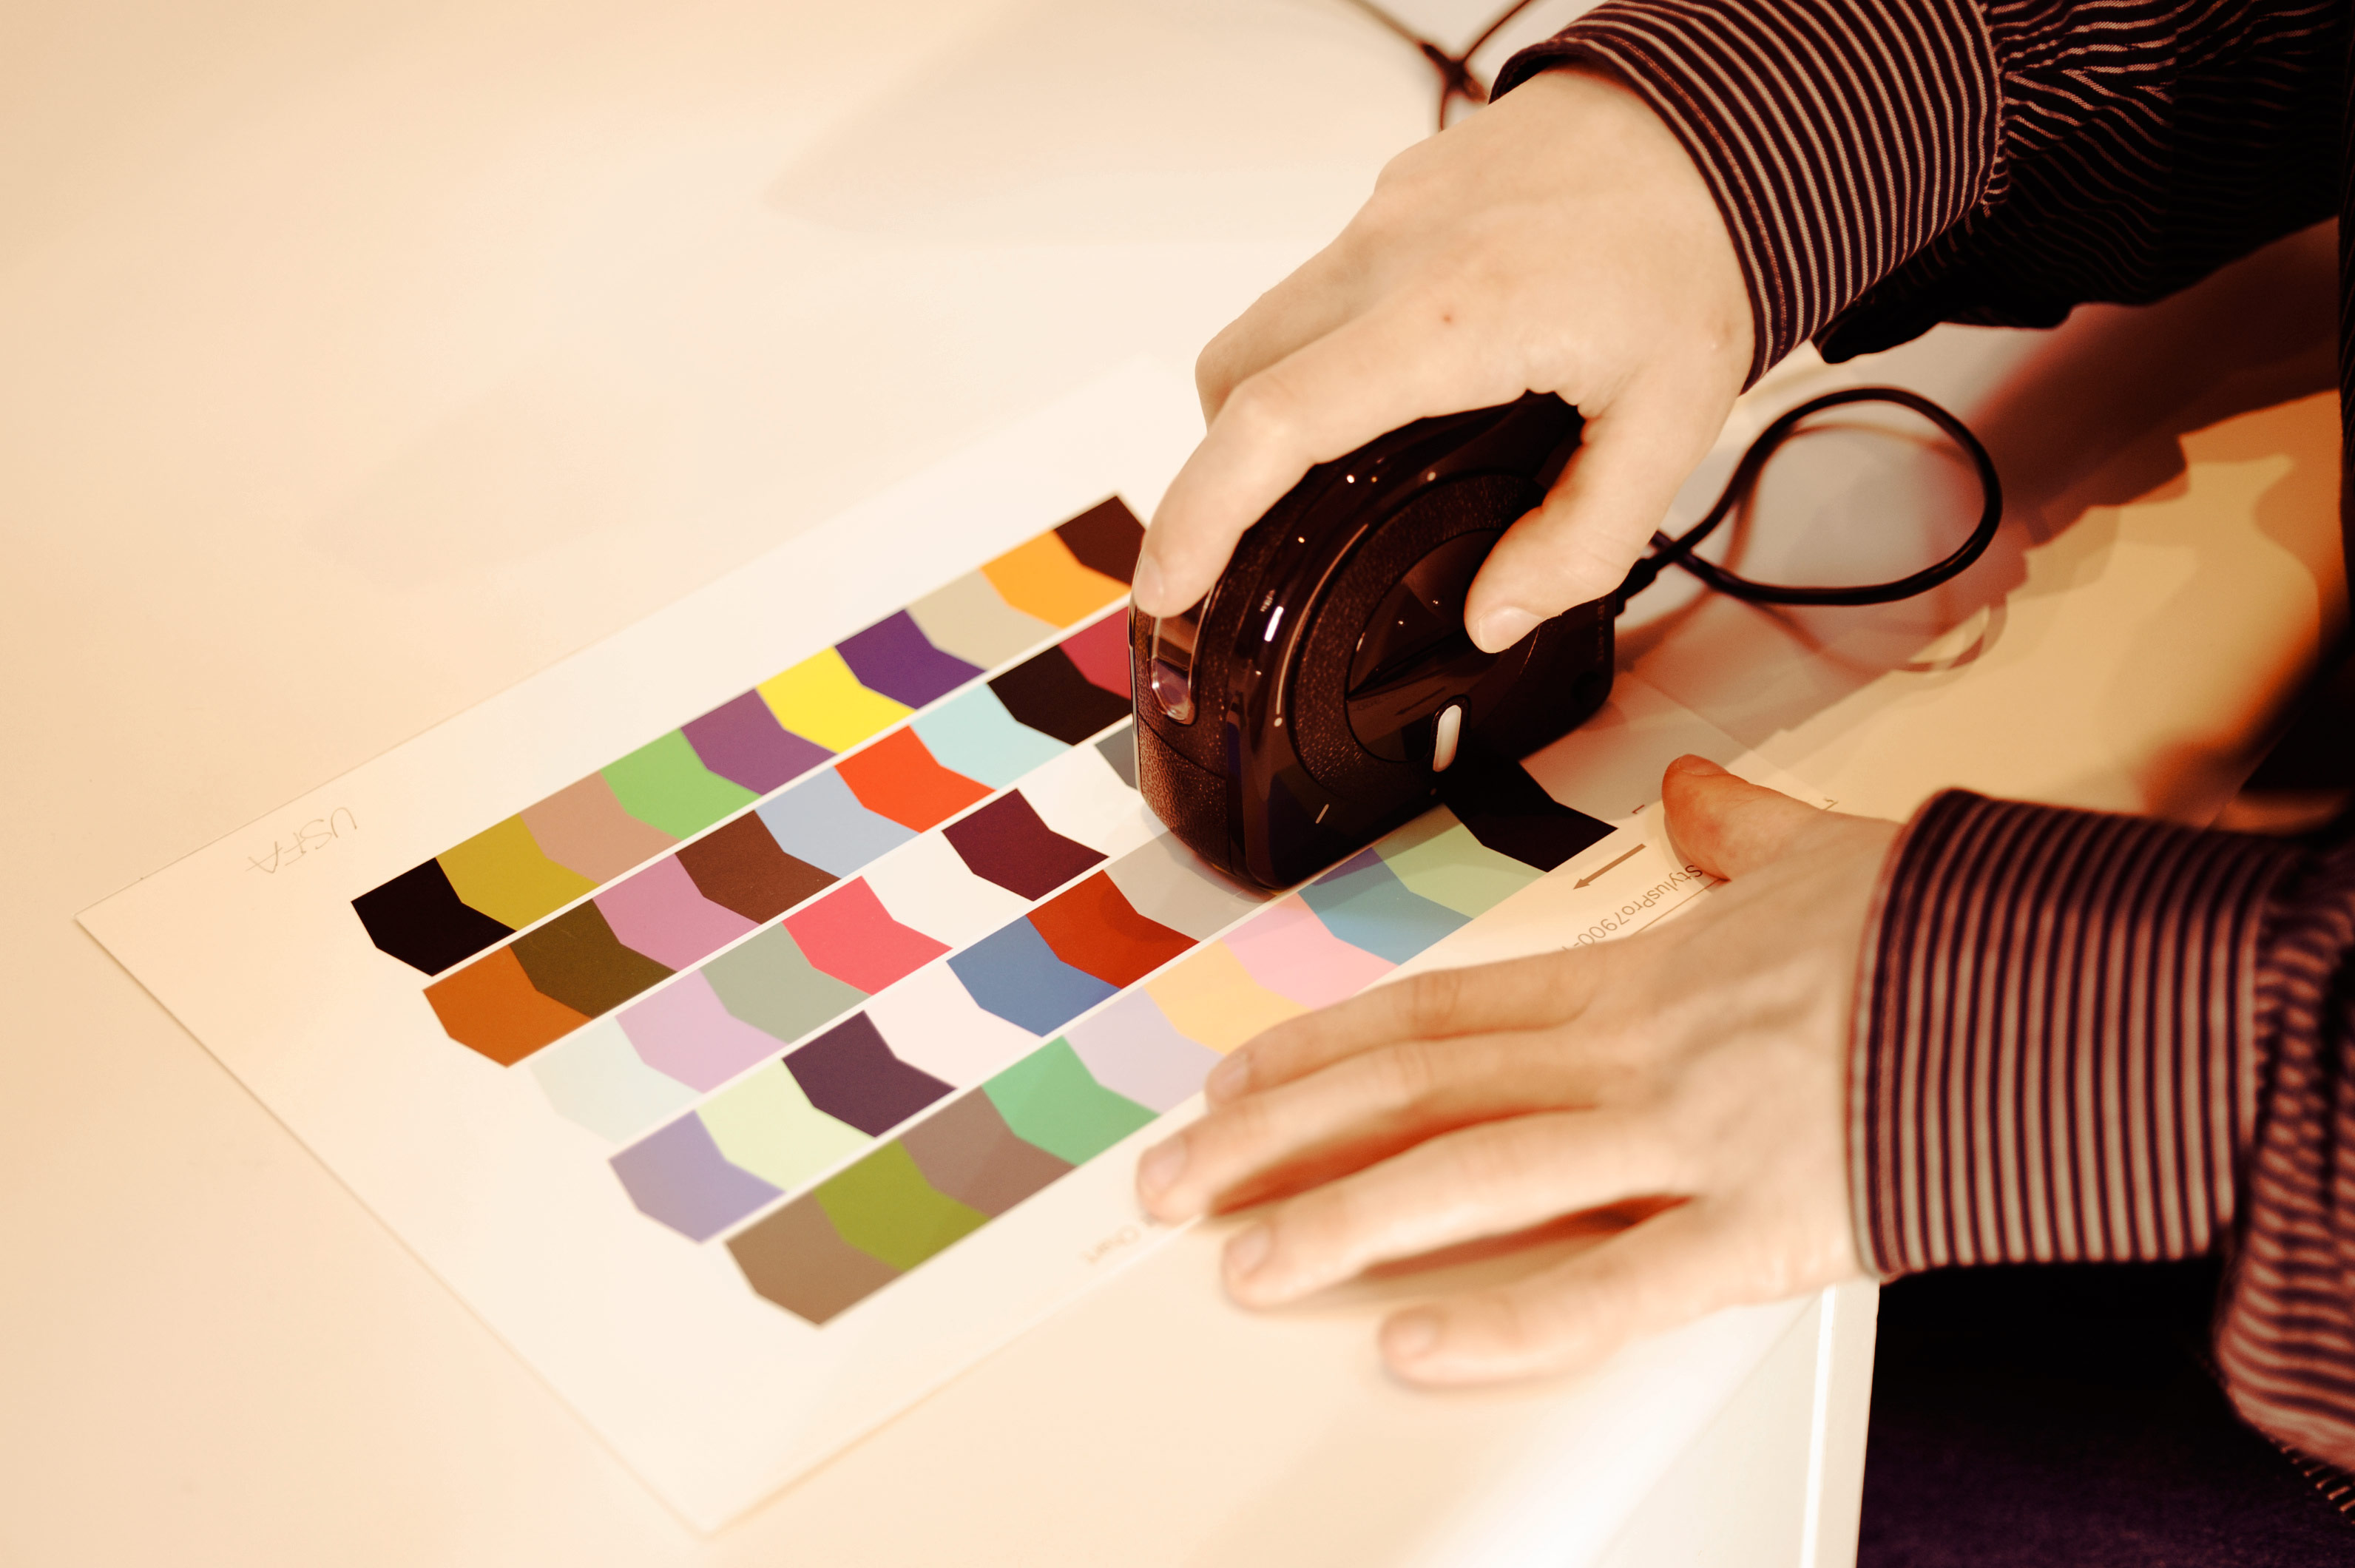 Zac creating a color profile for accurate printing